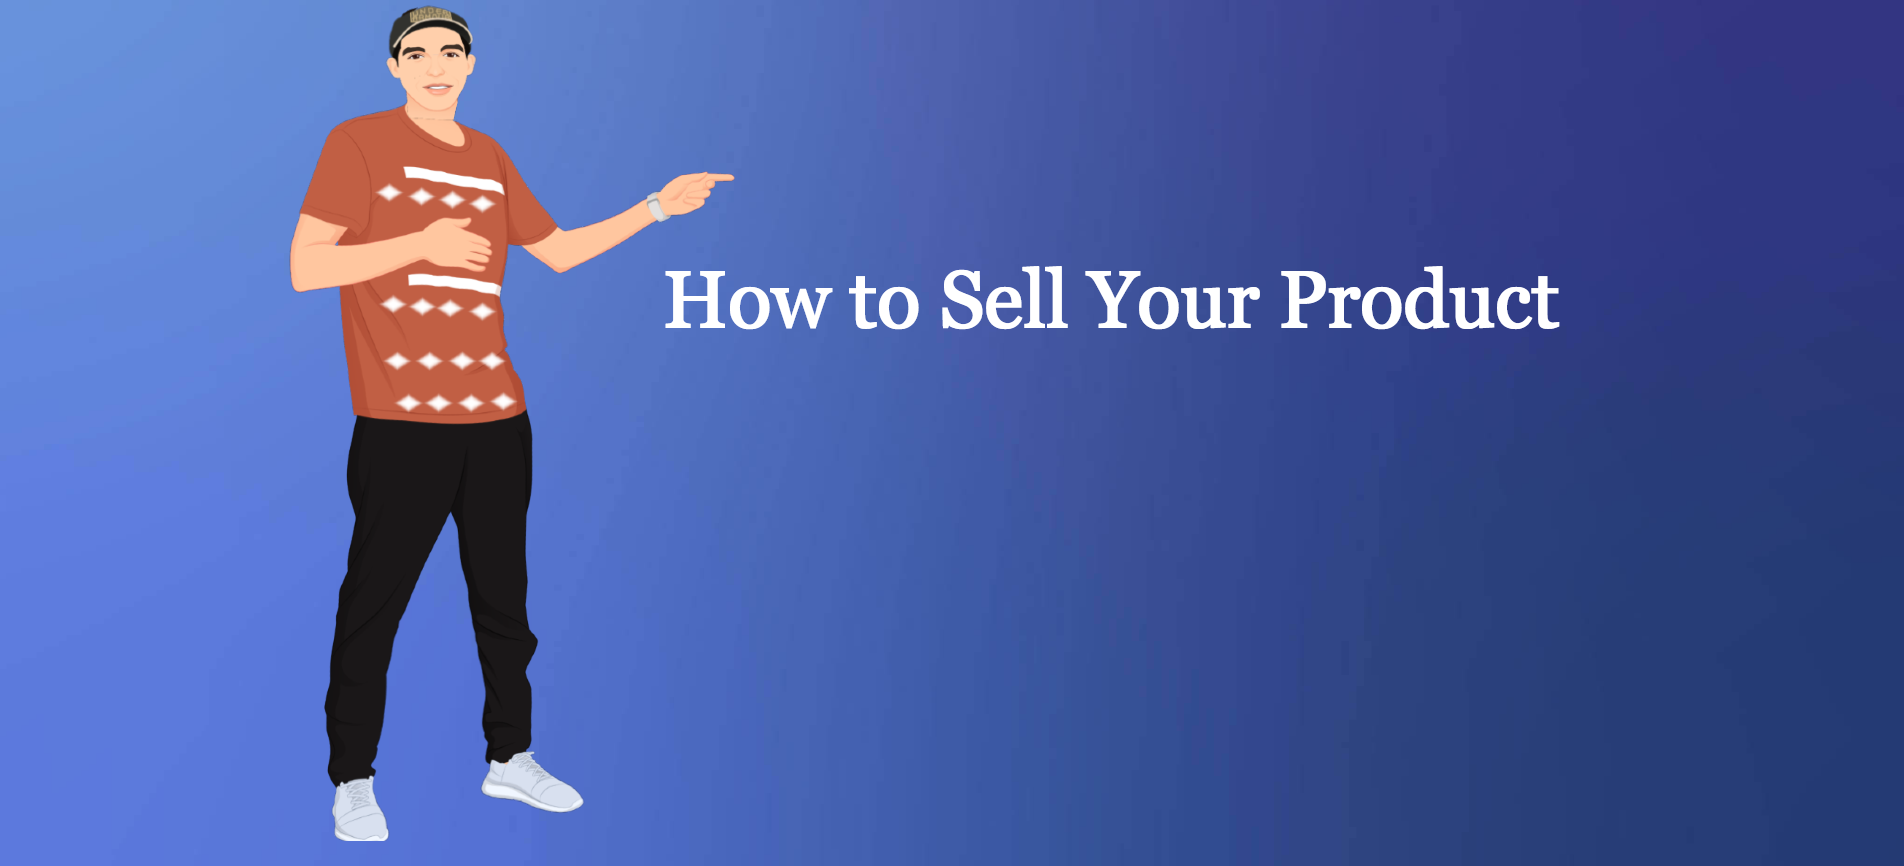 how to sell your product